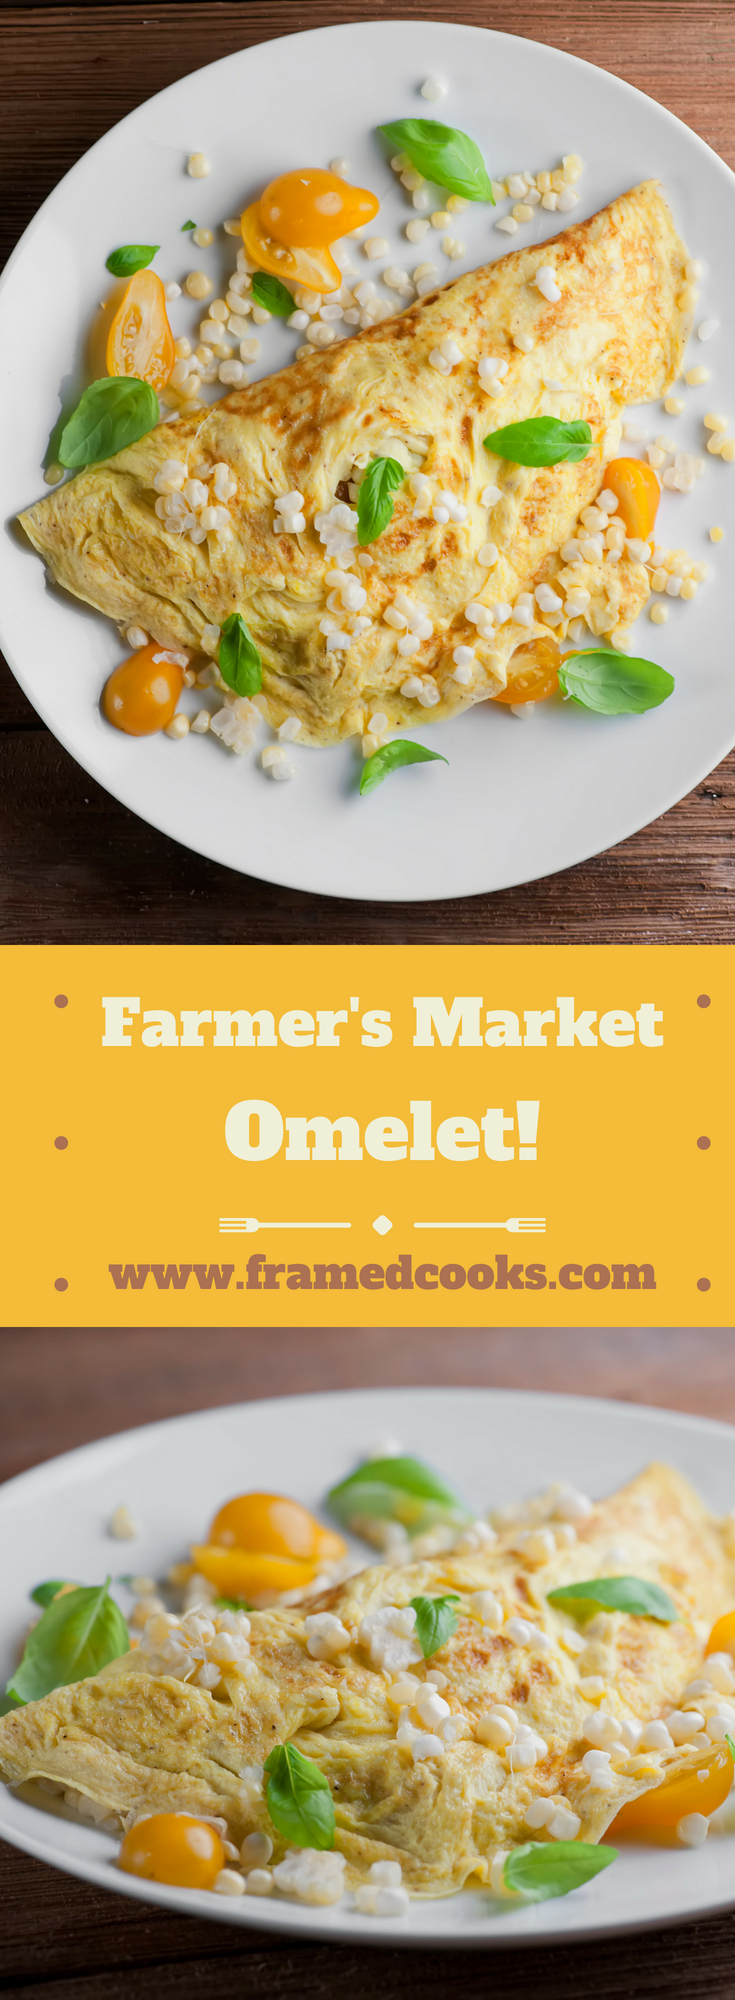 This easy recipe for a farmer's market omelet uses local summer corn, tomatoes and basil with cheddar cheese for a breakfast bursting with flavor.